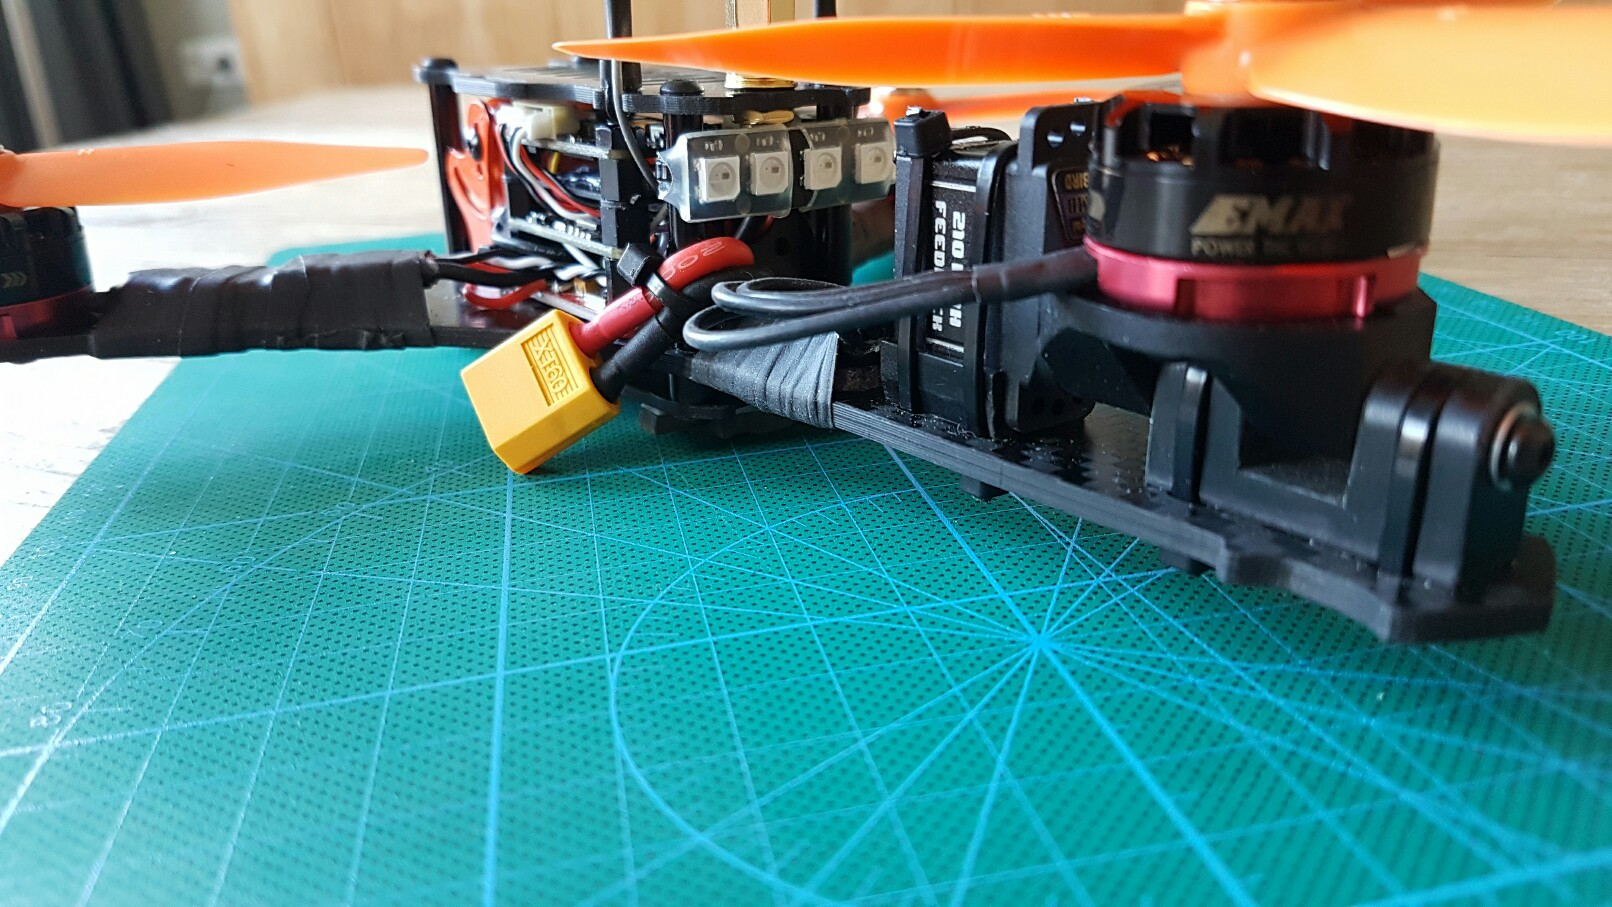 Share Your Build Setup Page 15 Rcexplorer Diy Printed Circuit Boards 20170310 112351 1612x907